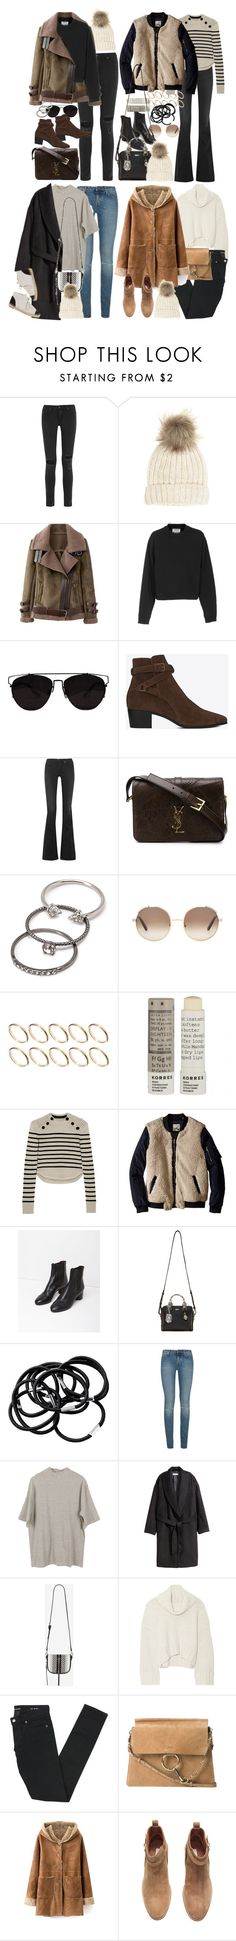 """Inspired with requested beanie"" by nikka-phillips ❤ liked on Polyvore featuring rag & bone, H&M, Acne Studios, Retrò, Yves Saint Laurent, Forever 21, Chloé, ASOS, Korres and Isabel Marant"